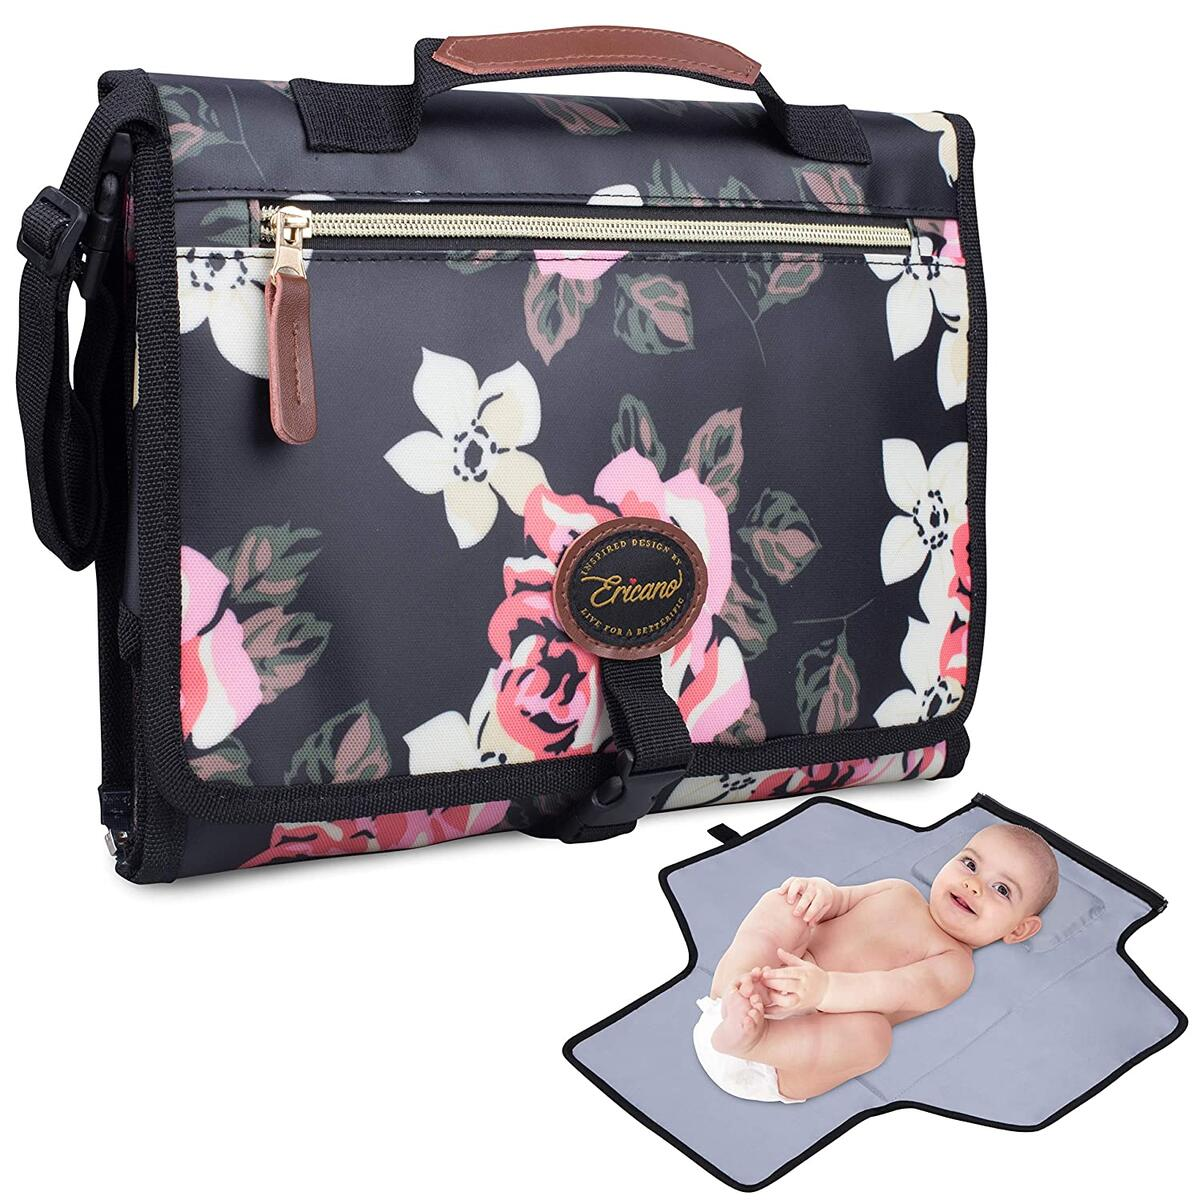 Portable Diaper Changing Pad Built-In Cushion Pillow - Foldable Clutch Bag Travel Changing Mat with Removable Pockets - Black Pink Floral